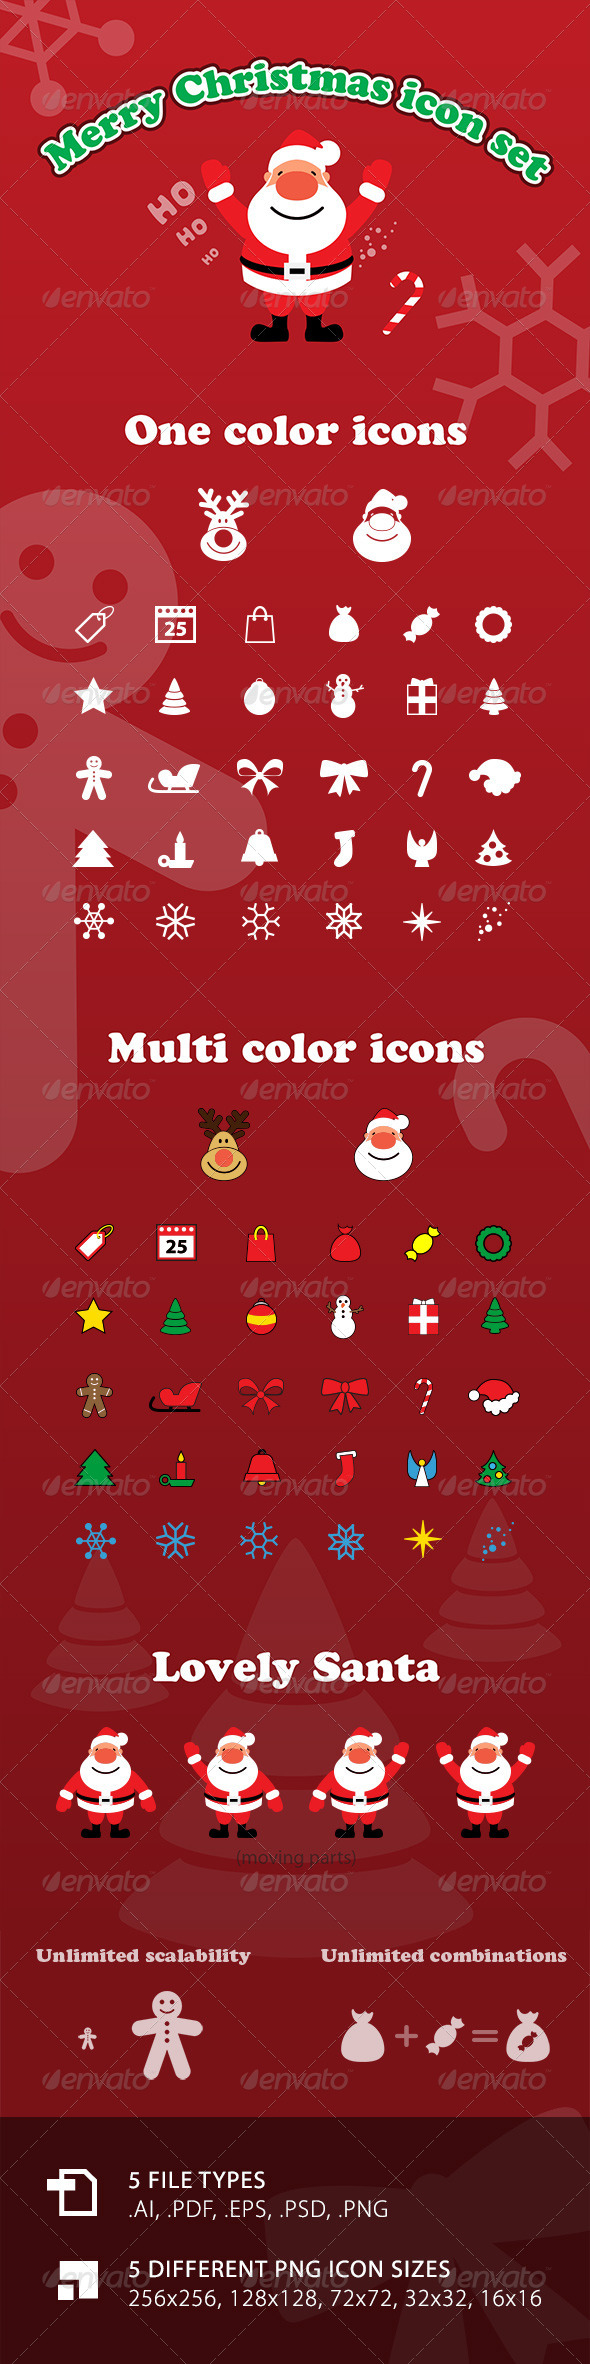 Vector Merry Christmas Icon Set with Santa - Seasonal Icons